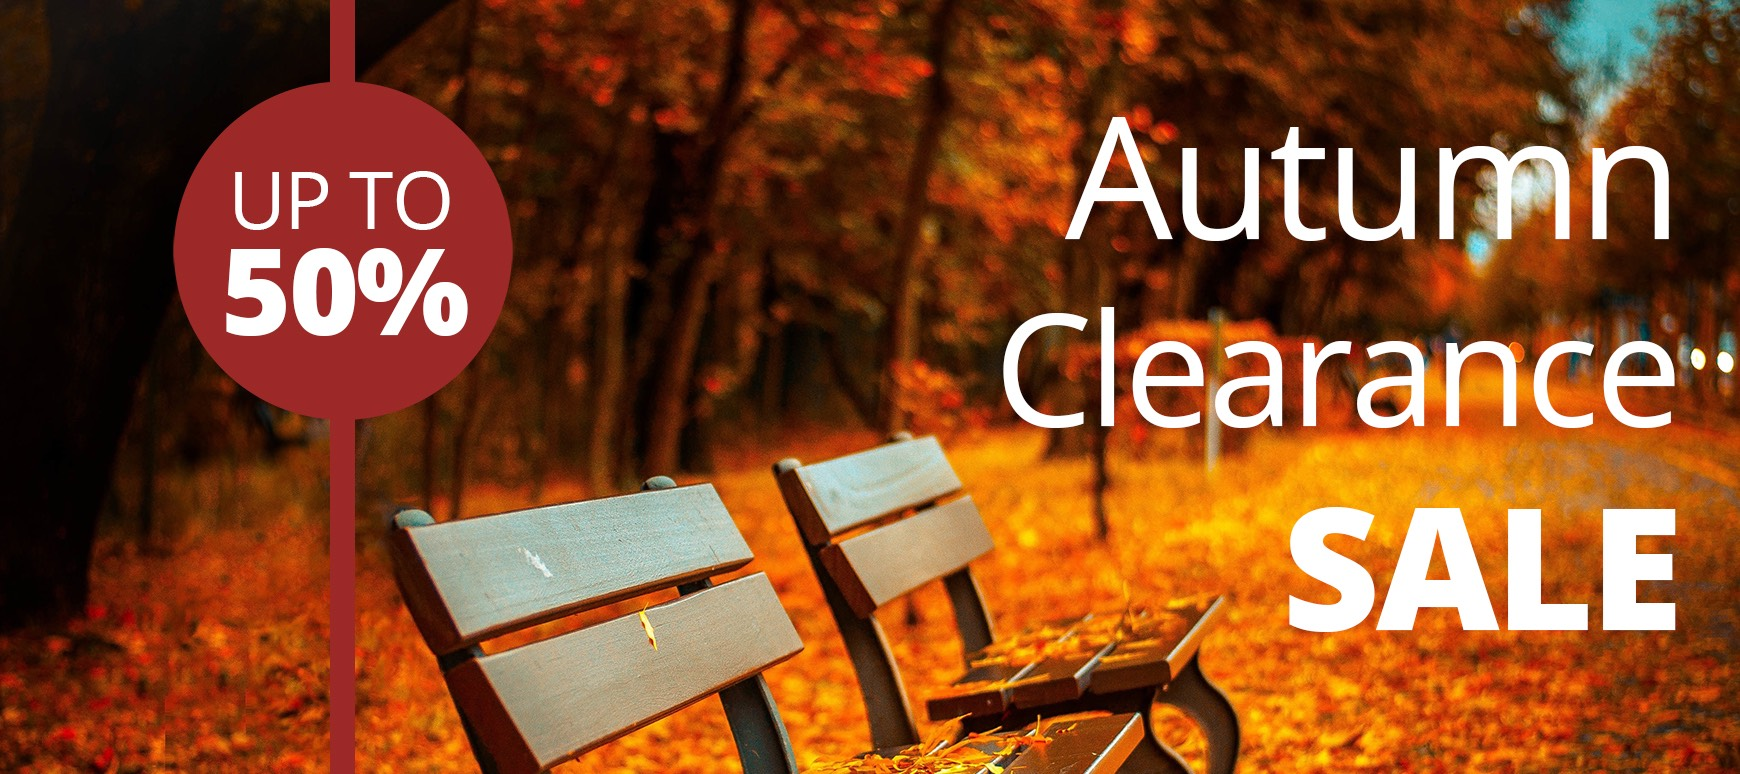 Autumn Clearance Sale